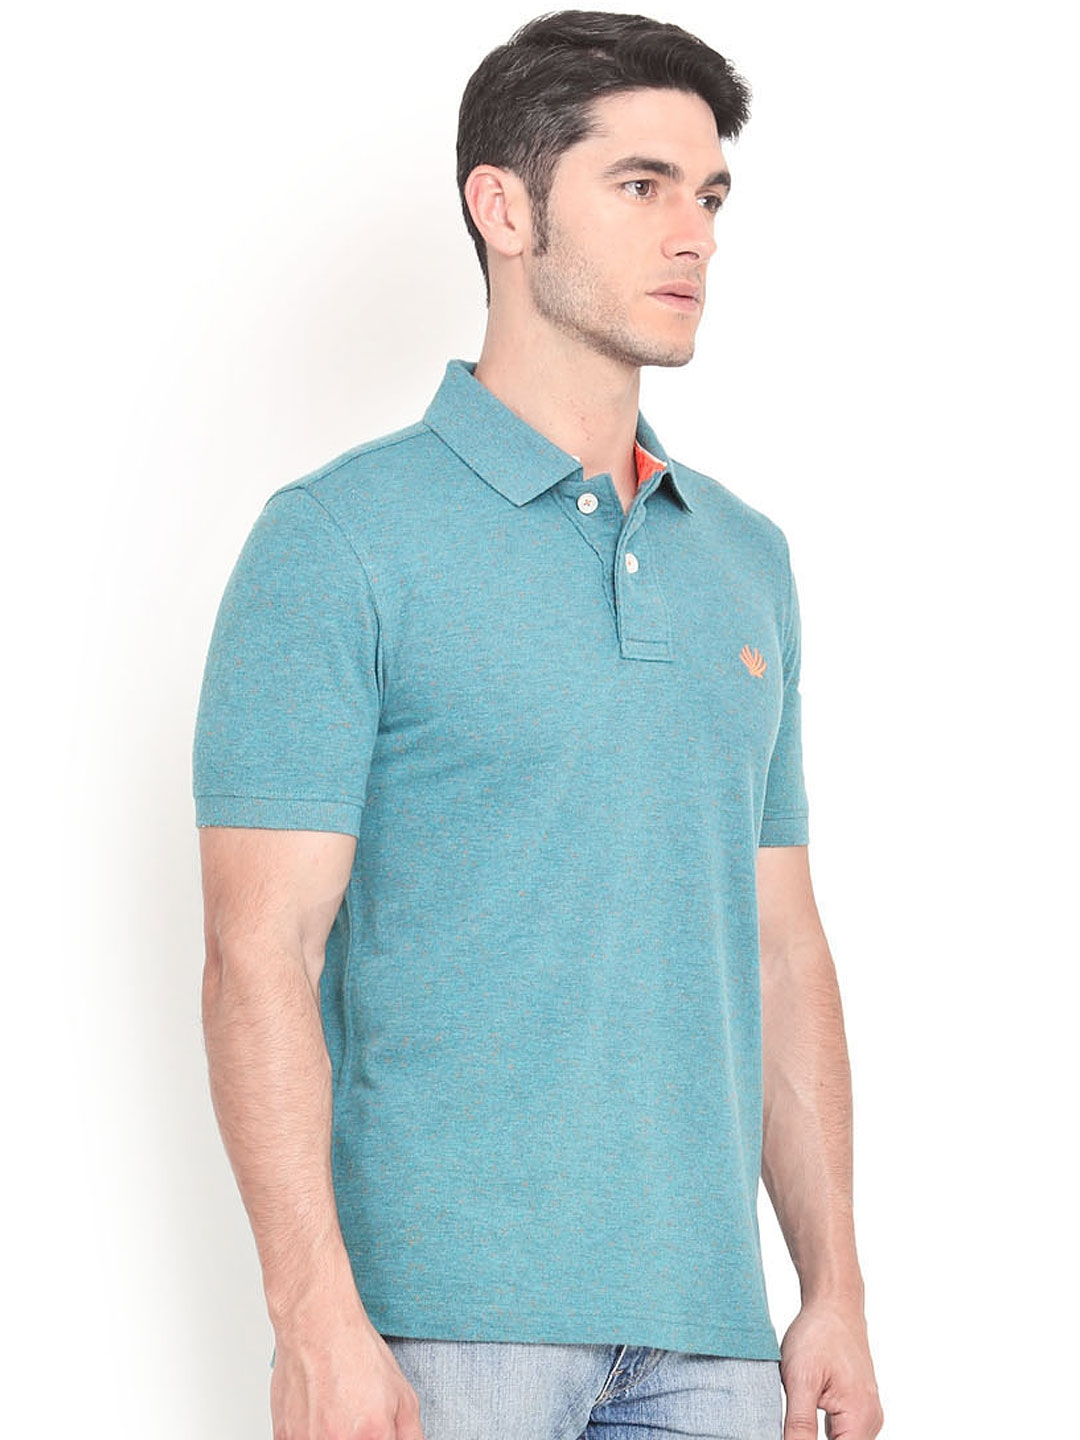 Myntra smokestack men teal blue custom fit polo t shirt for Mens teal polo shirt